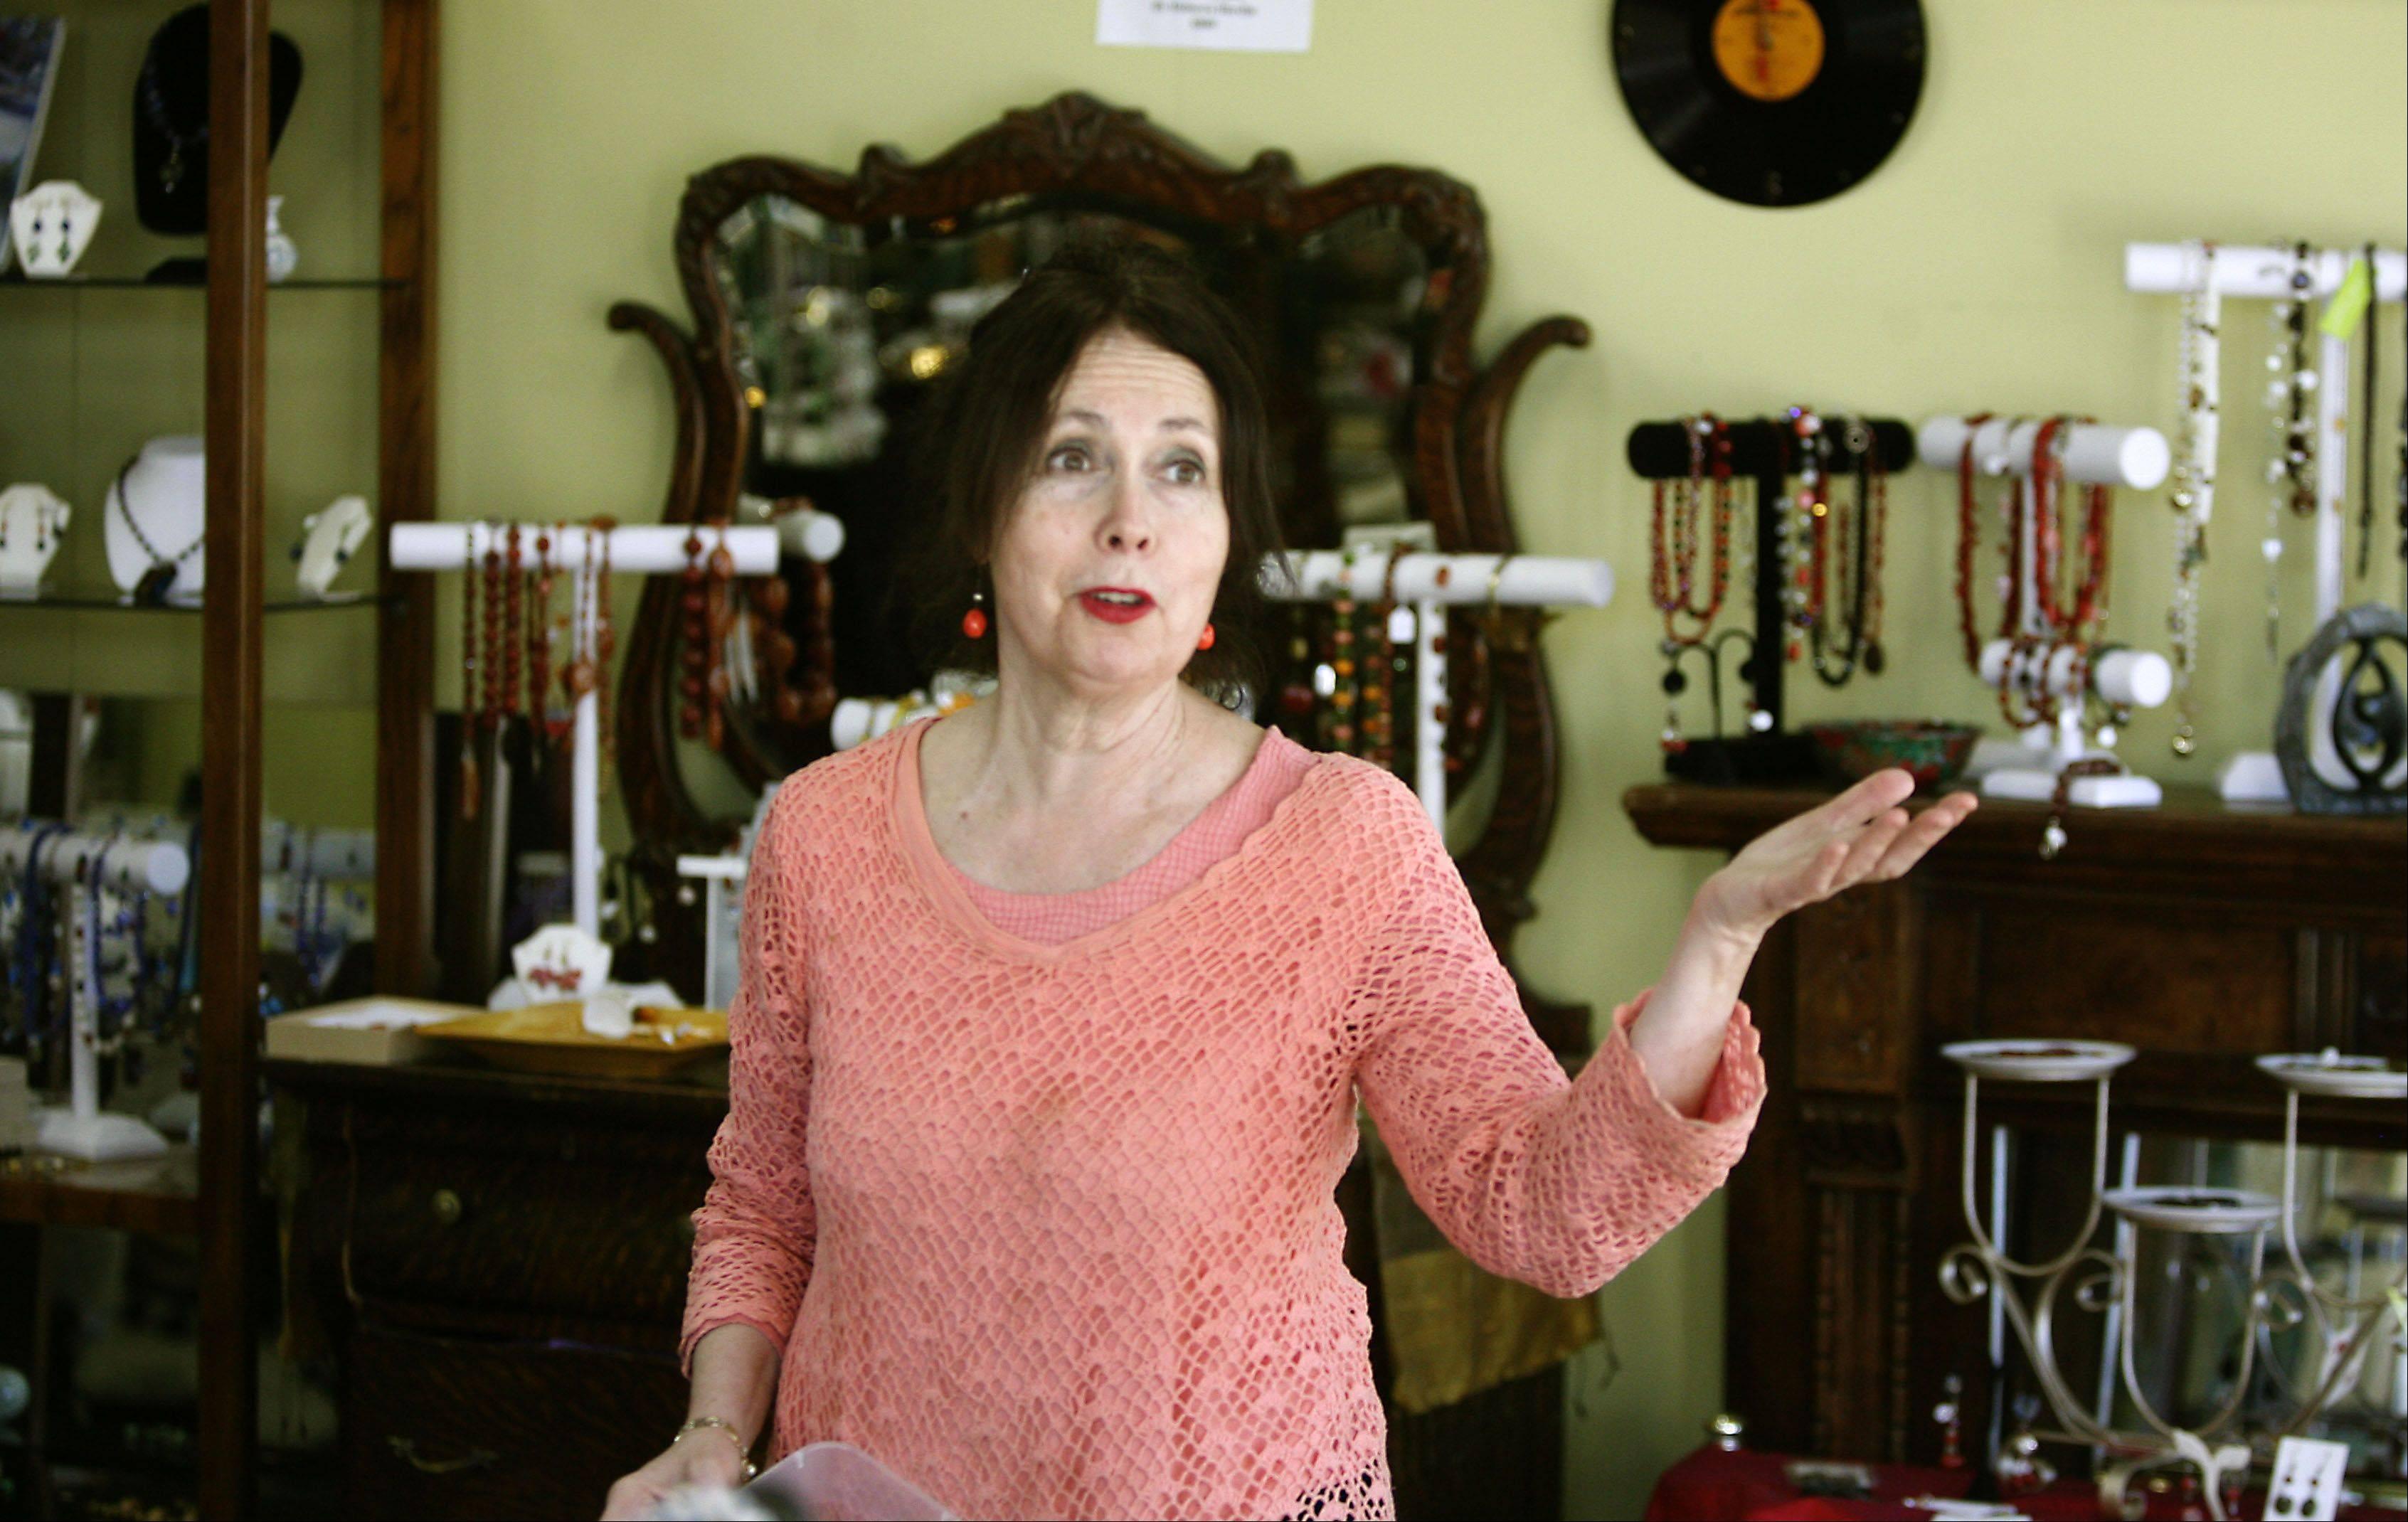 SARET Treasures of Hope owner Chana Bernstein is closing the store due to a decline in sales. The Glen Ellyn store raised money to help the homeless, disabled and less fortunate.